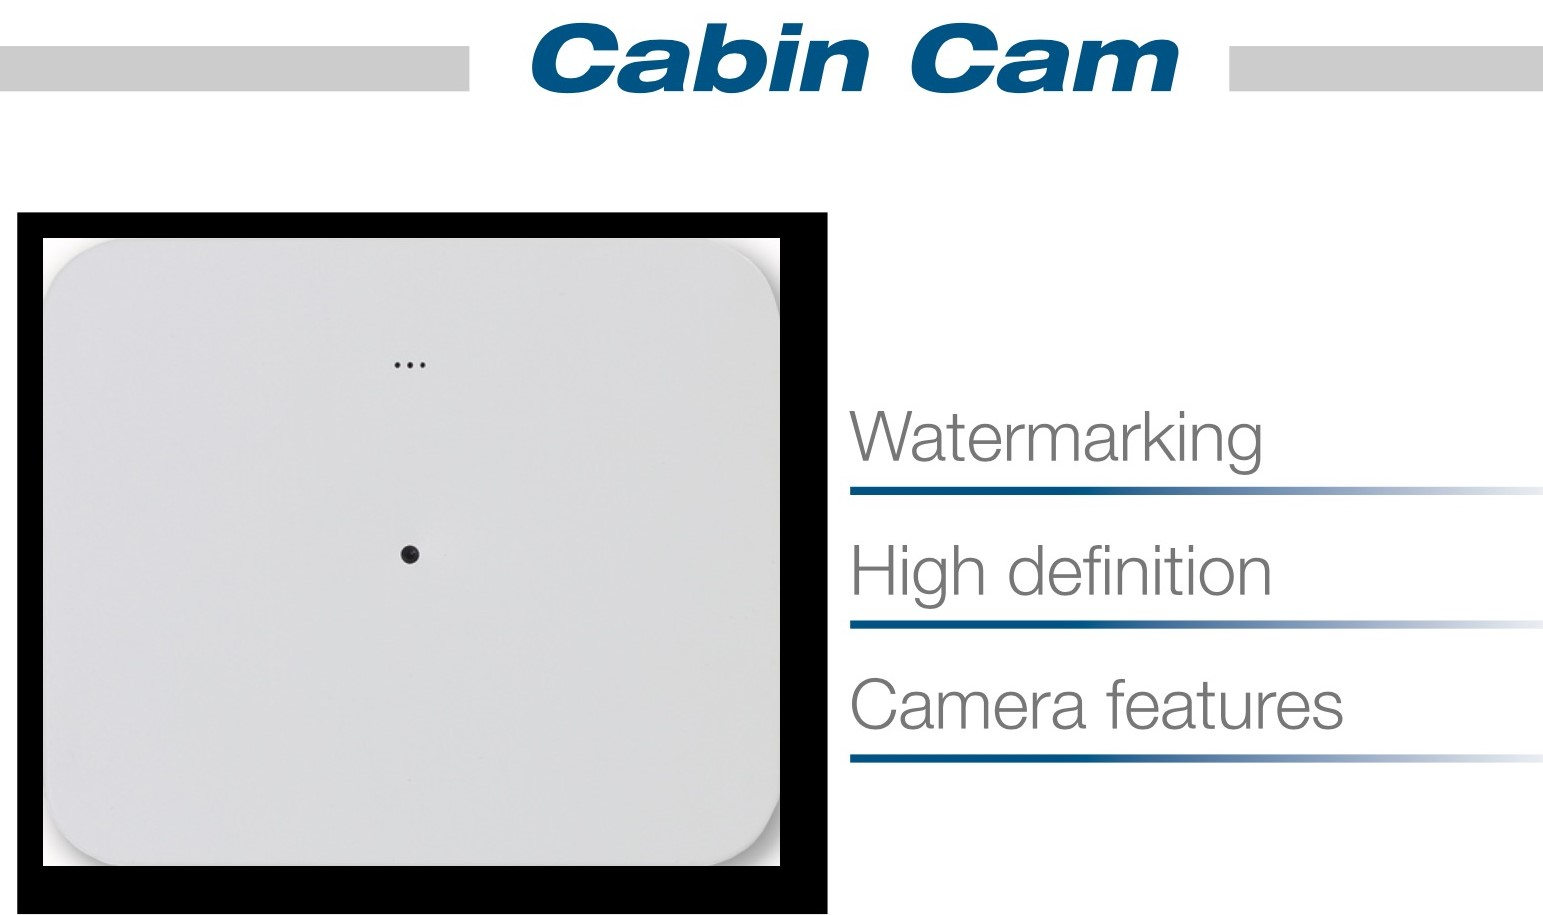 The nearly invisible cabin camera can deter and assist with the prosecution of disruptive inflight behavior.